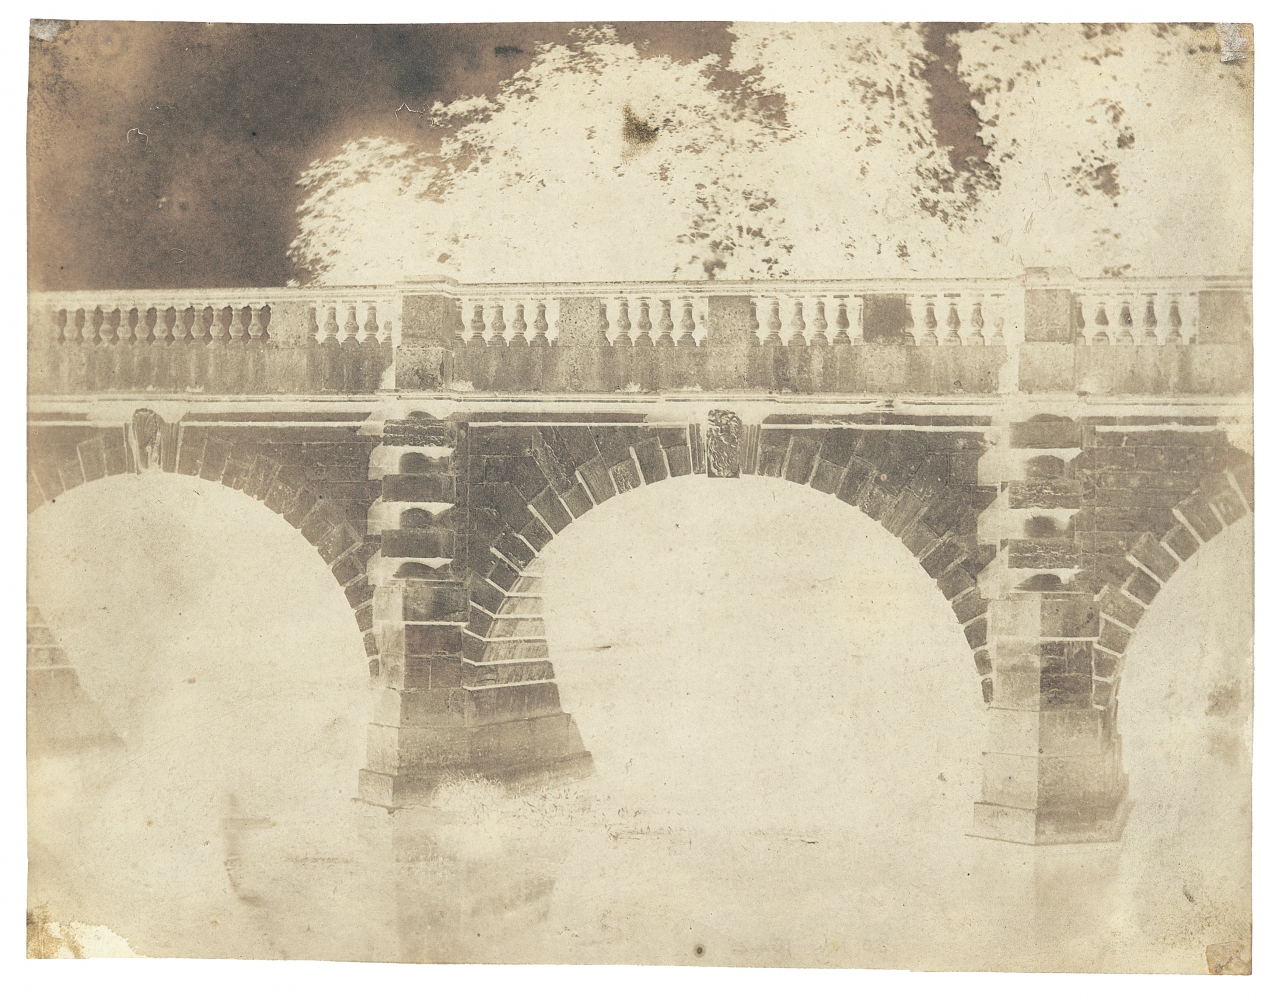 """William Henry Fox TALBOT (English, 1800-1877) Magdalen Bridge, Oxford, 30 July 1842 Calotype negative, waxed 16.2 x 20.7 cm Inscribed in pencil on verso """"30 July 1842"""""""